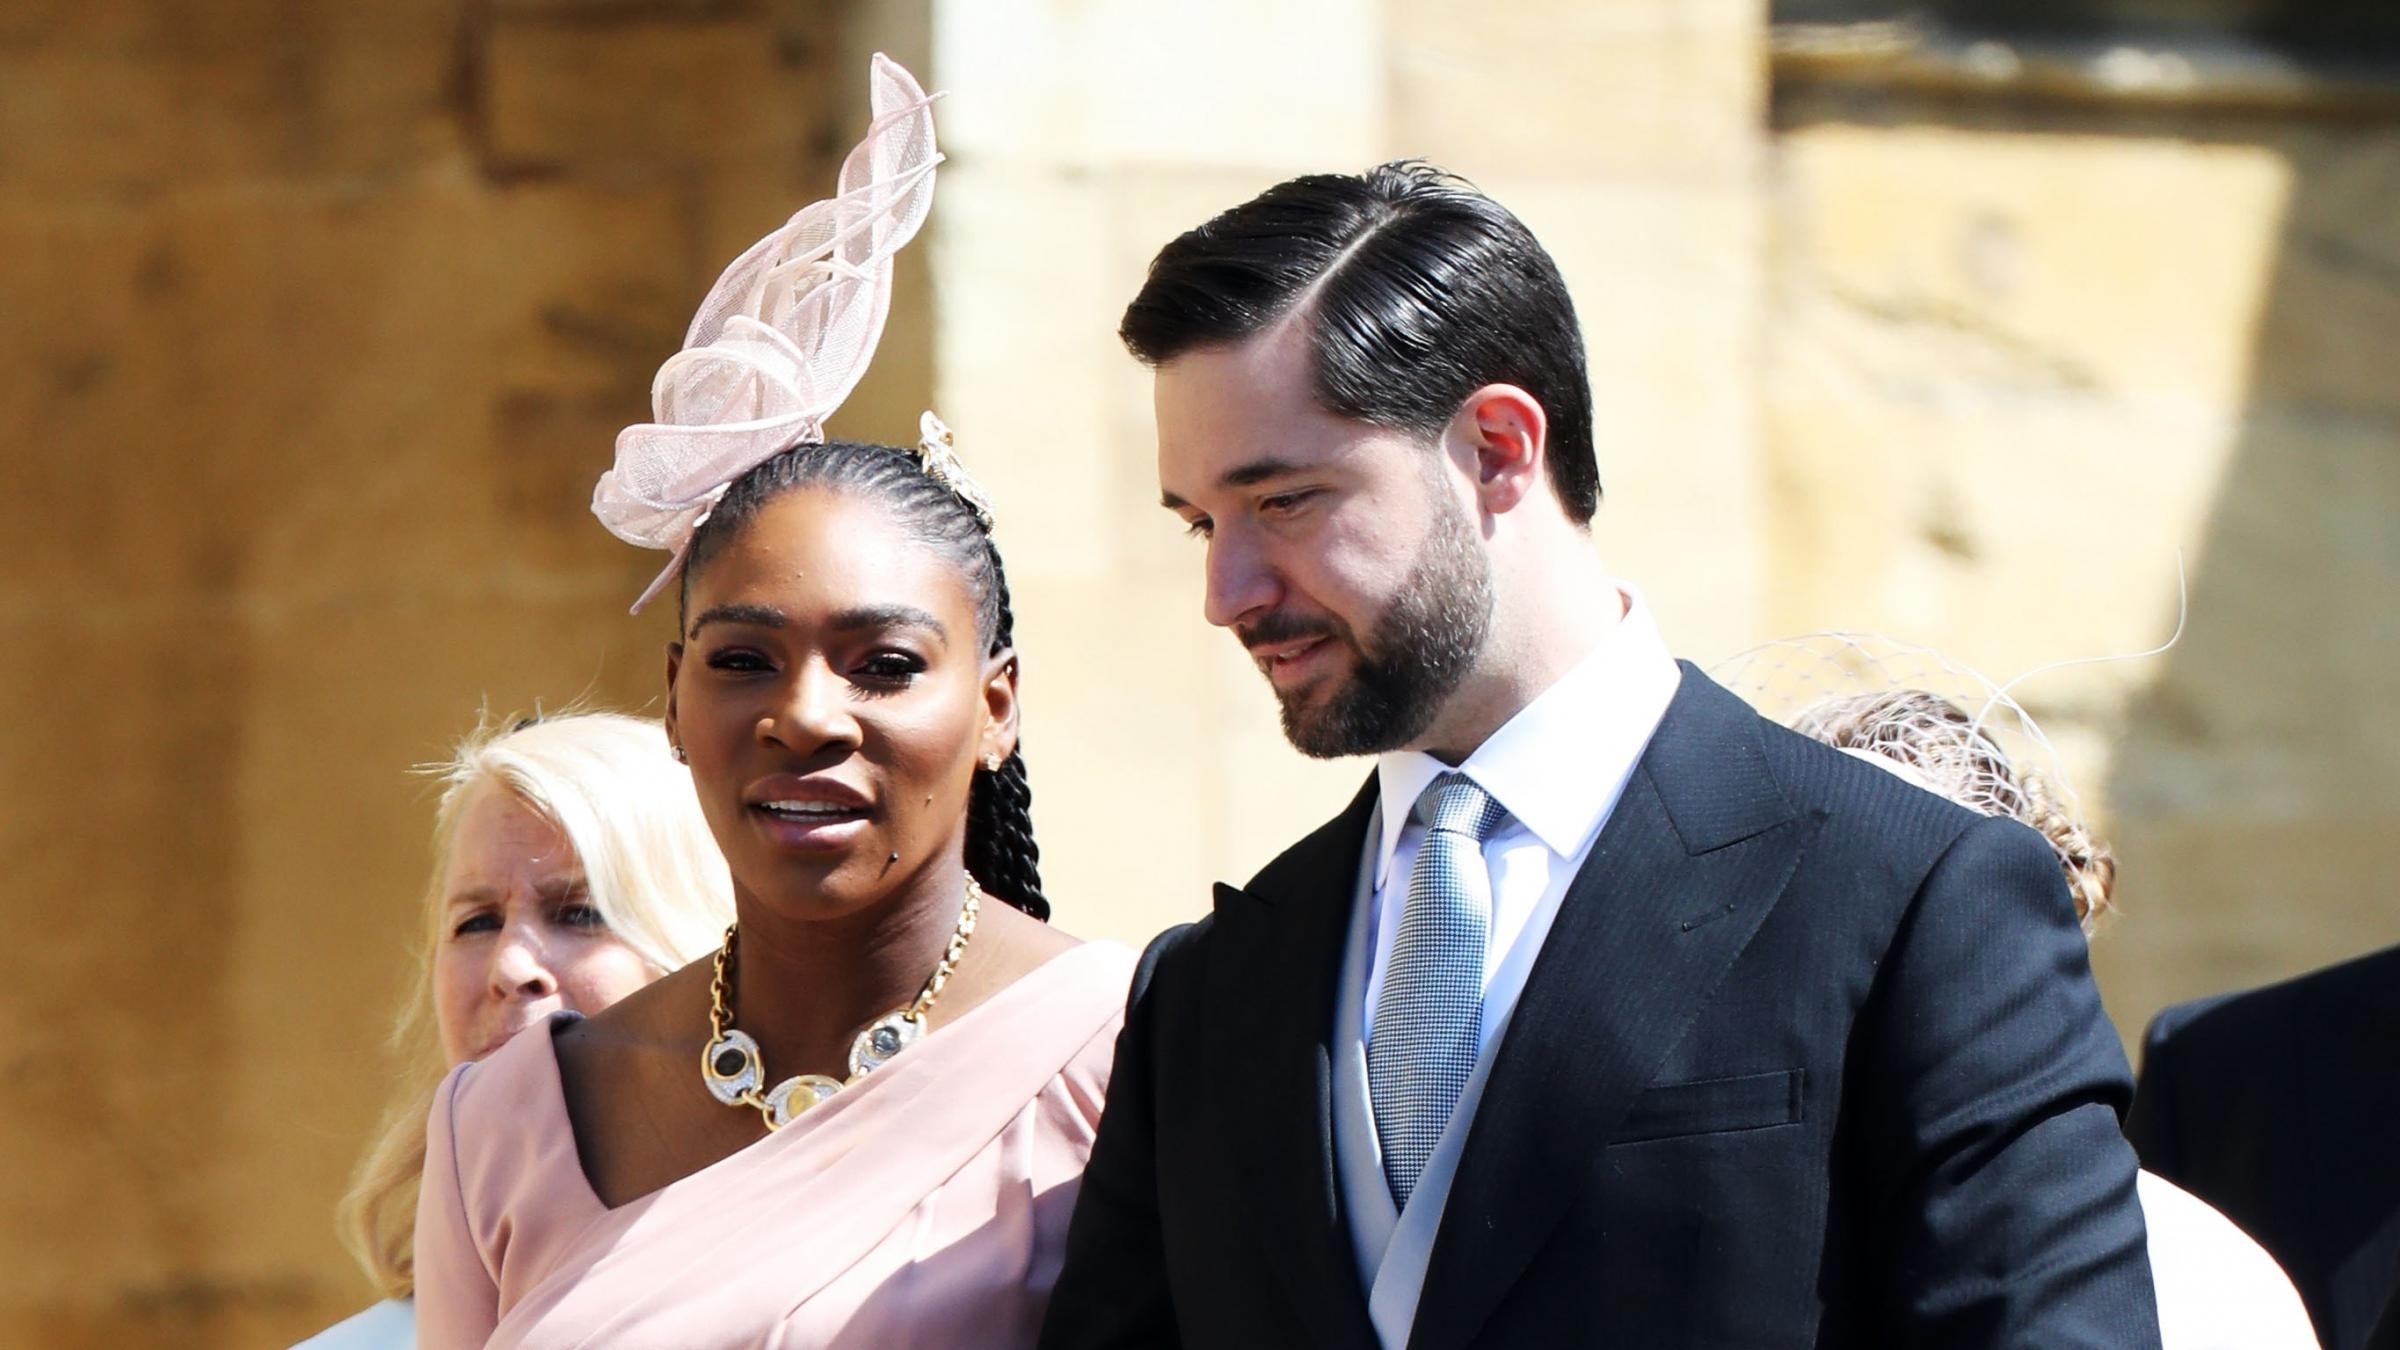 Serena Williams: I wore sneakers under royal wedding outfit